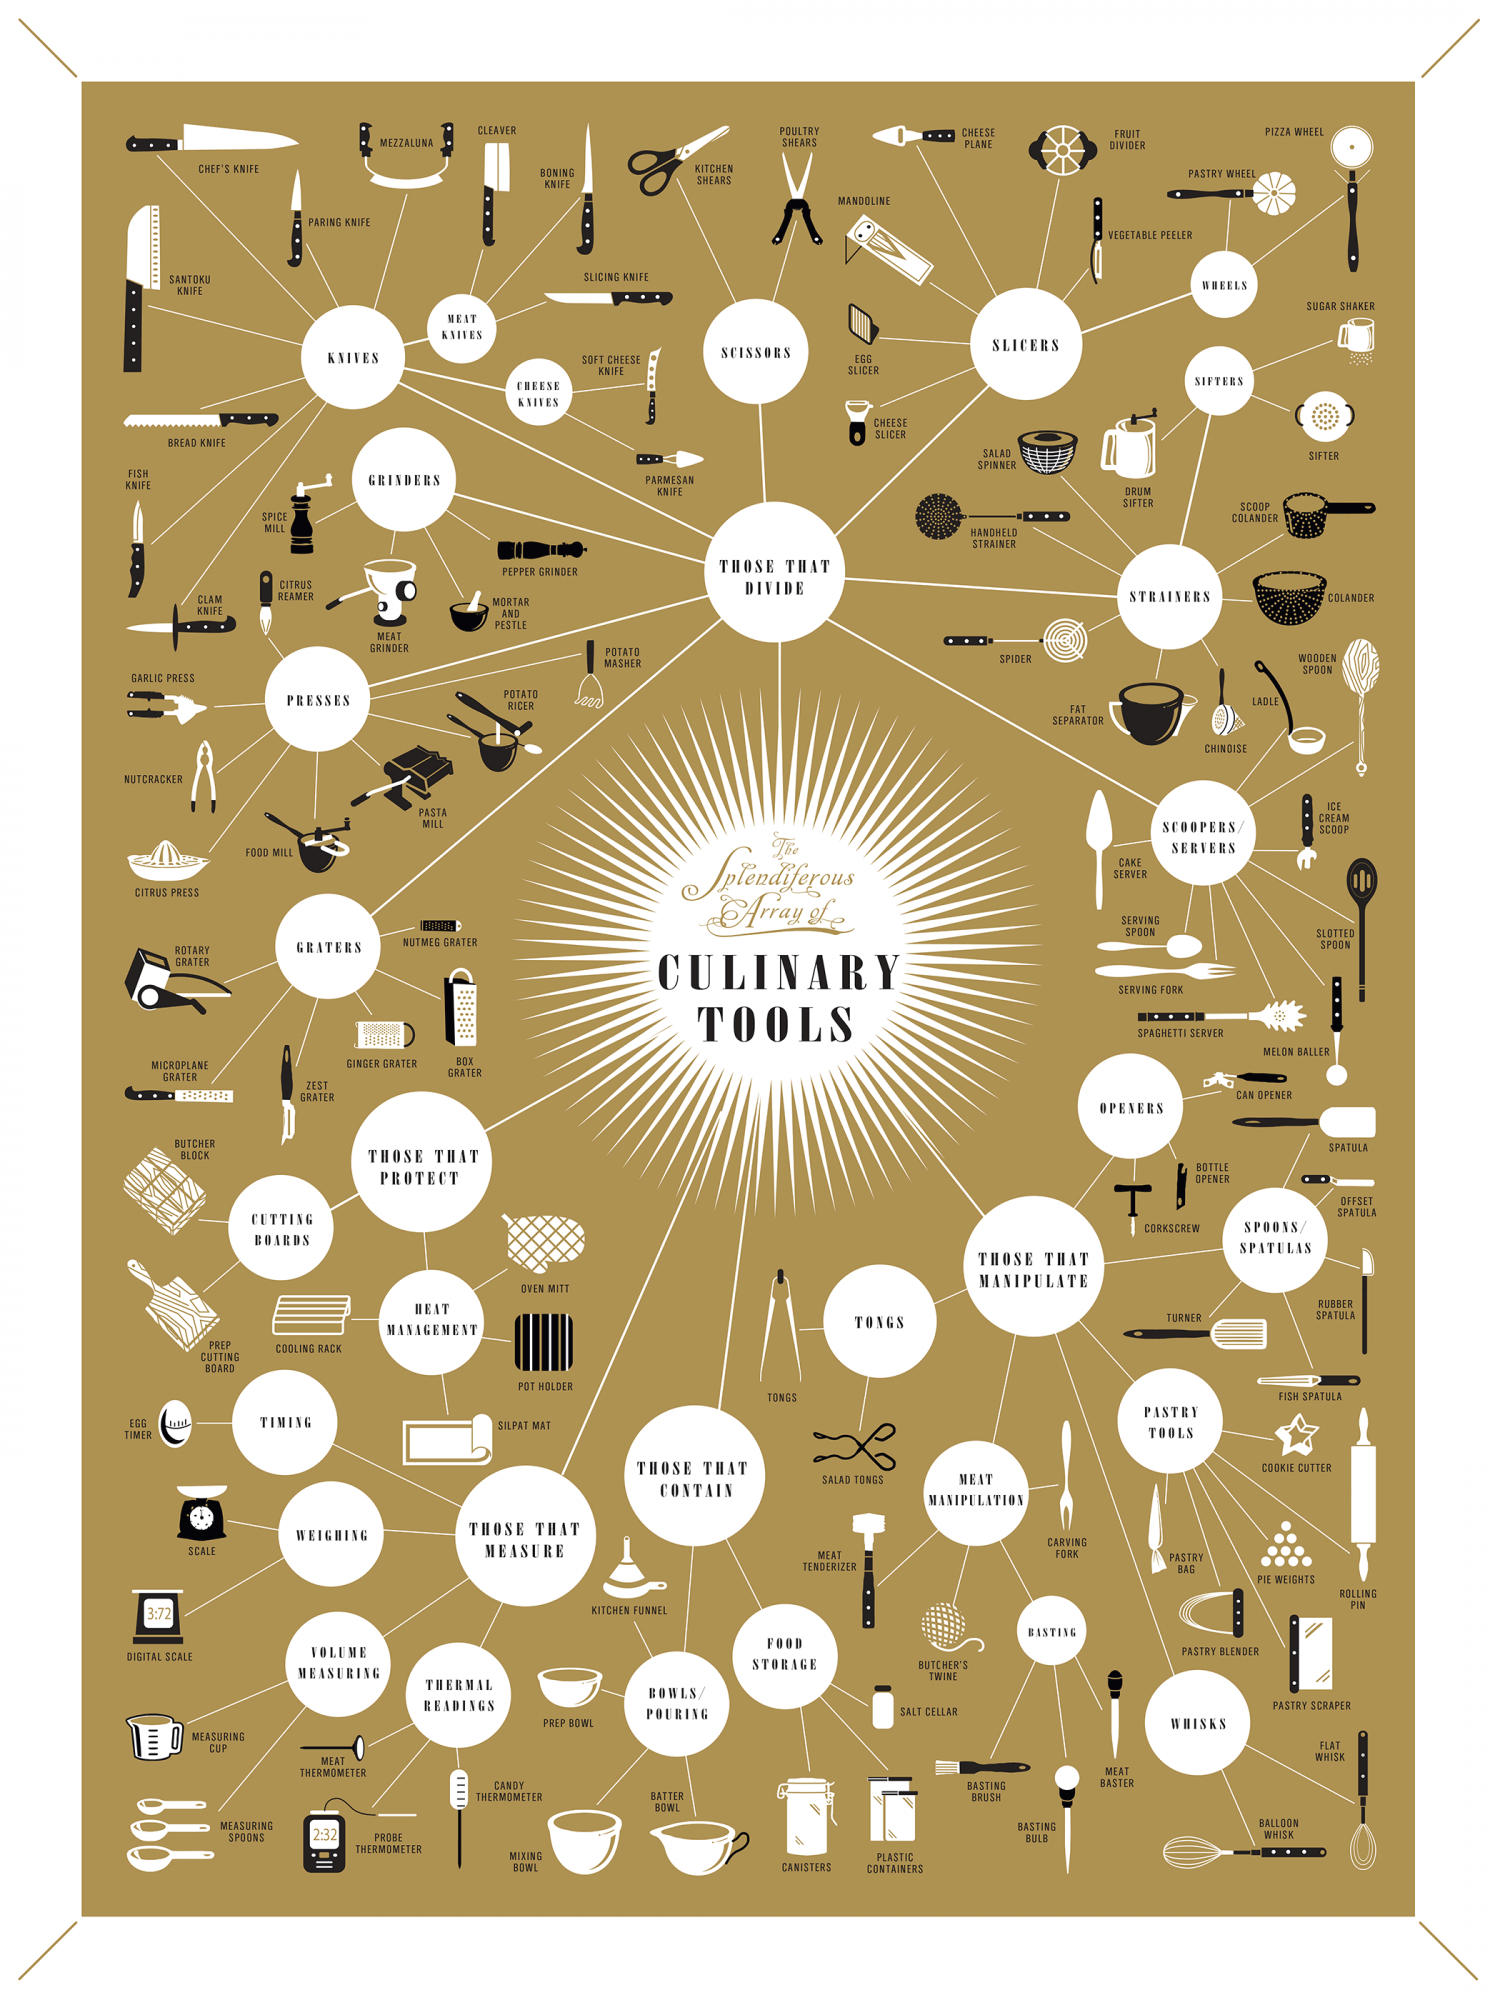 Culinary Tools Infographic